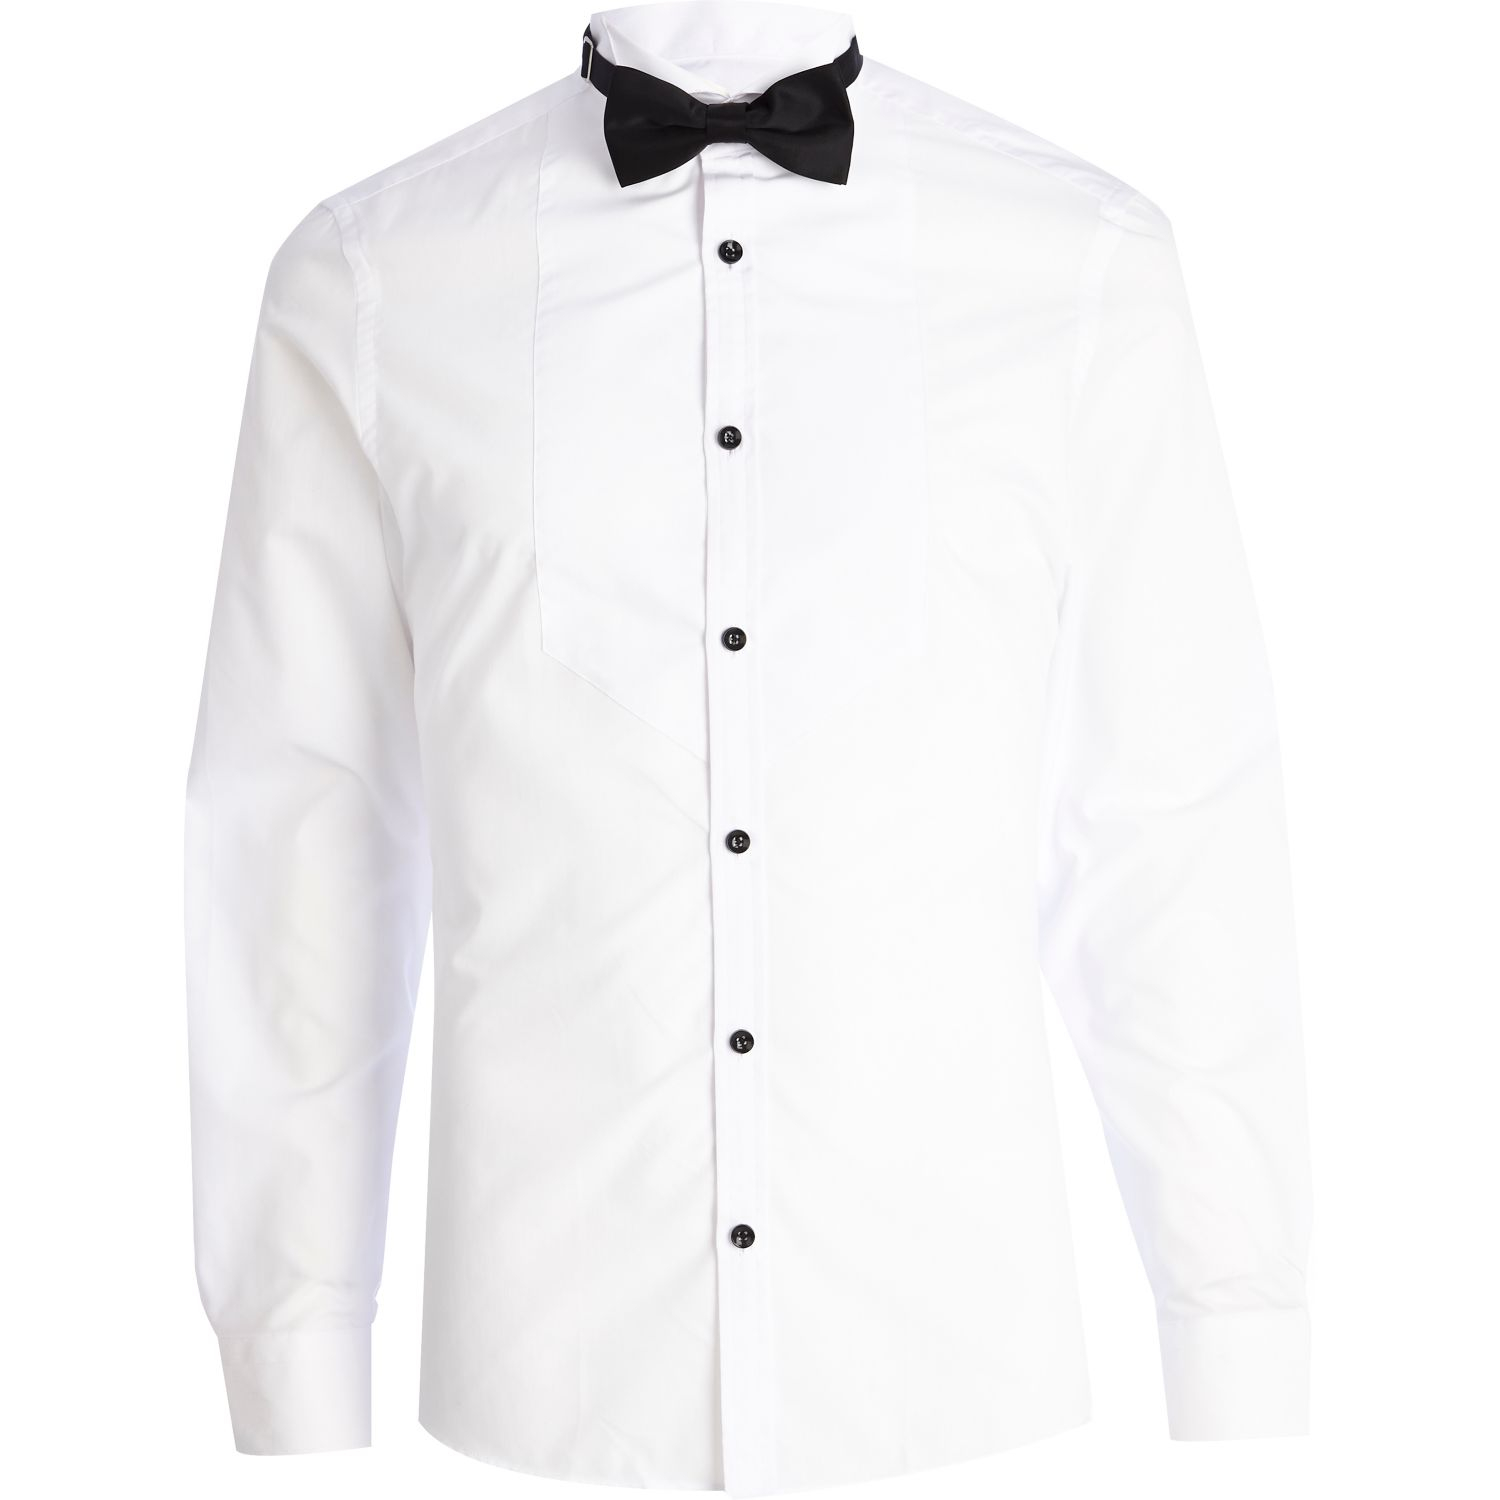 how to wear a formal shirt with bow tie